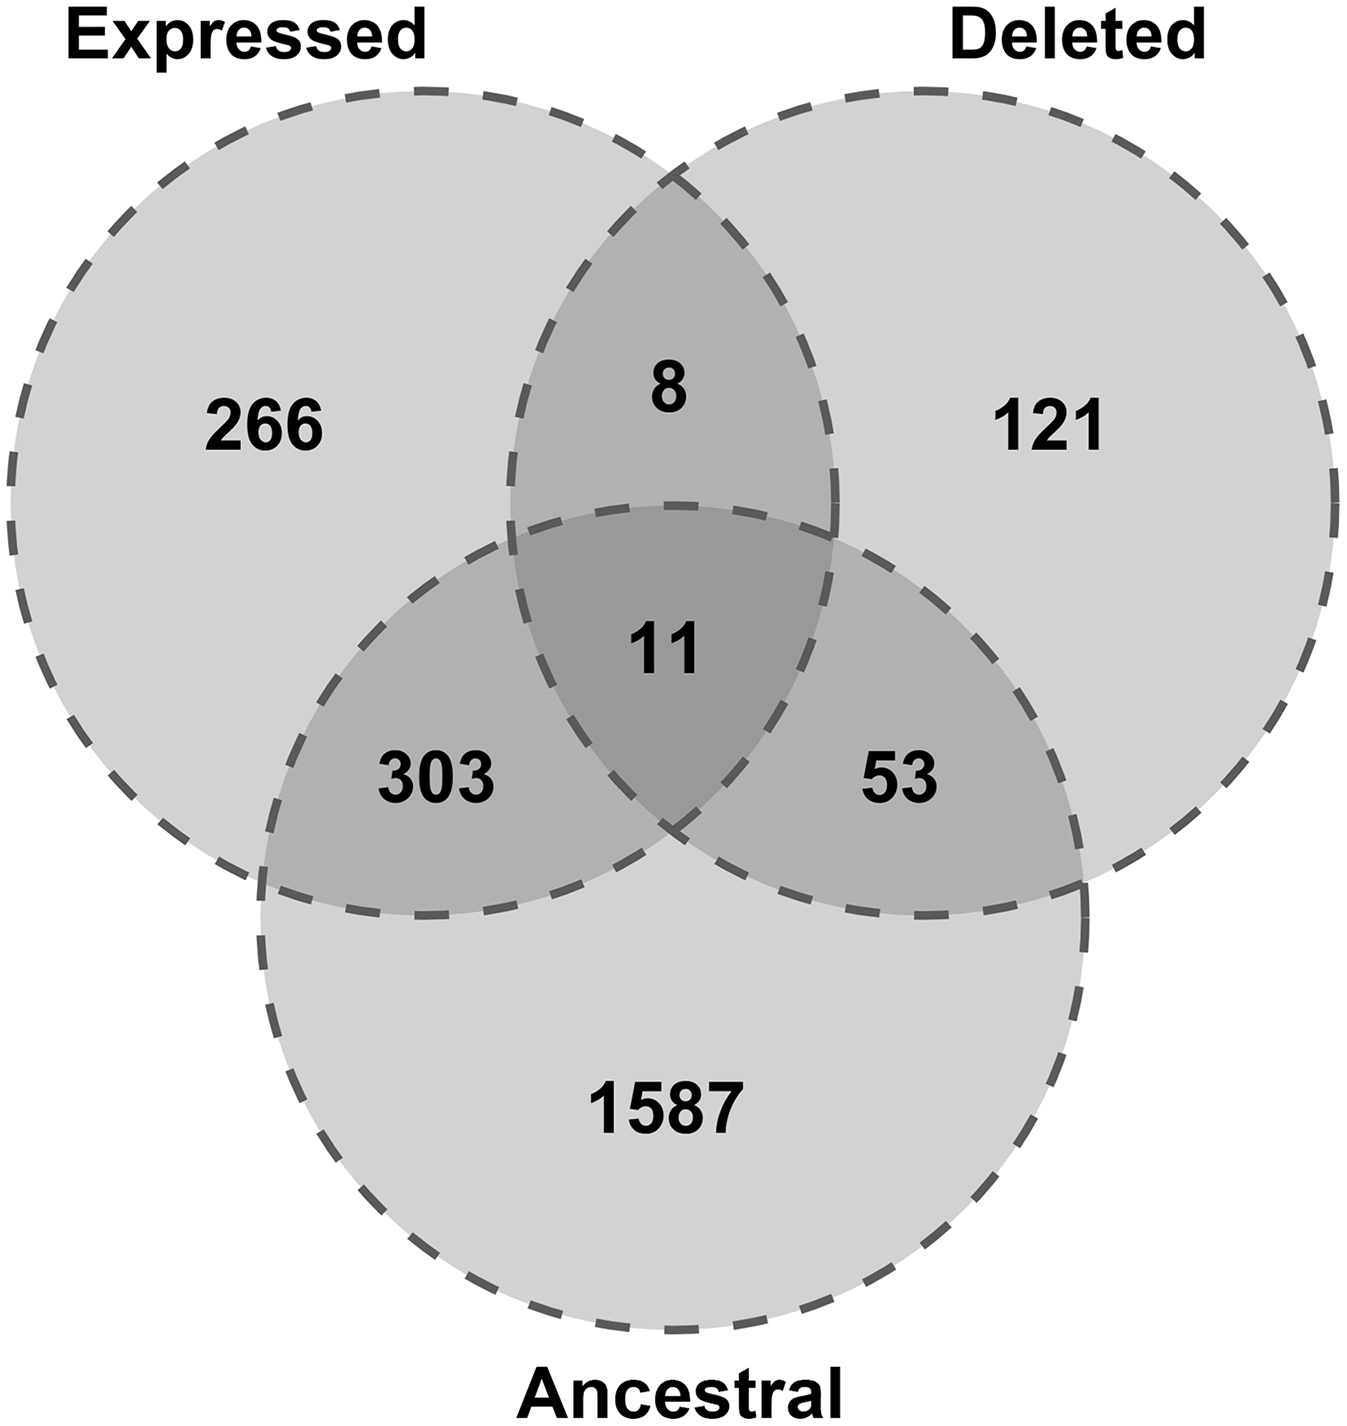 Expression and conservation of retrocopies deleted relative to the reference genome.